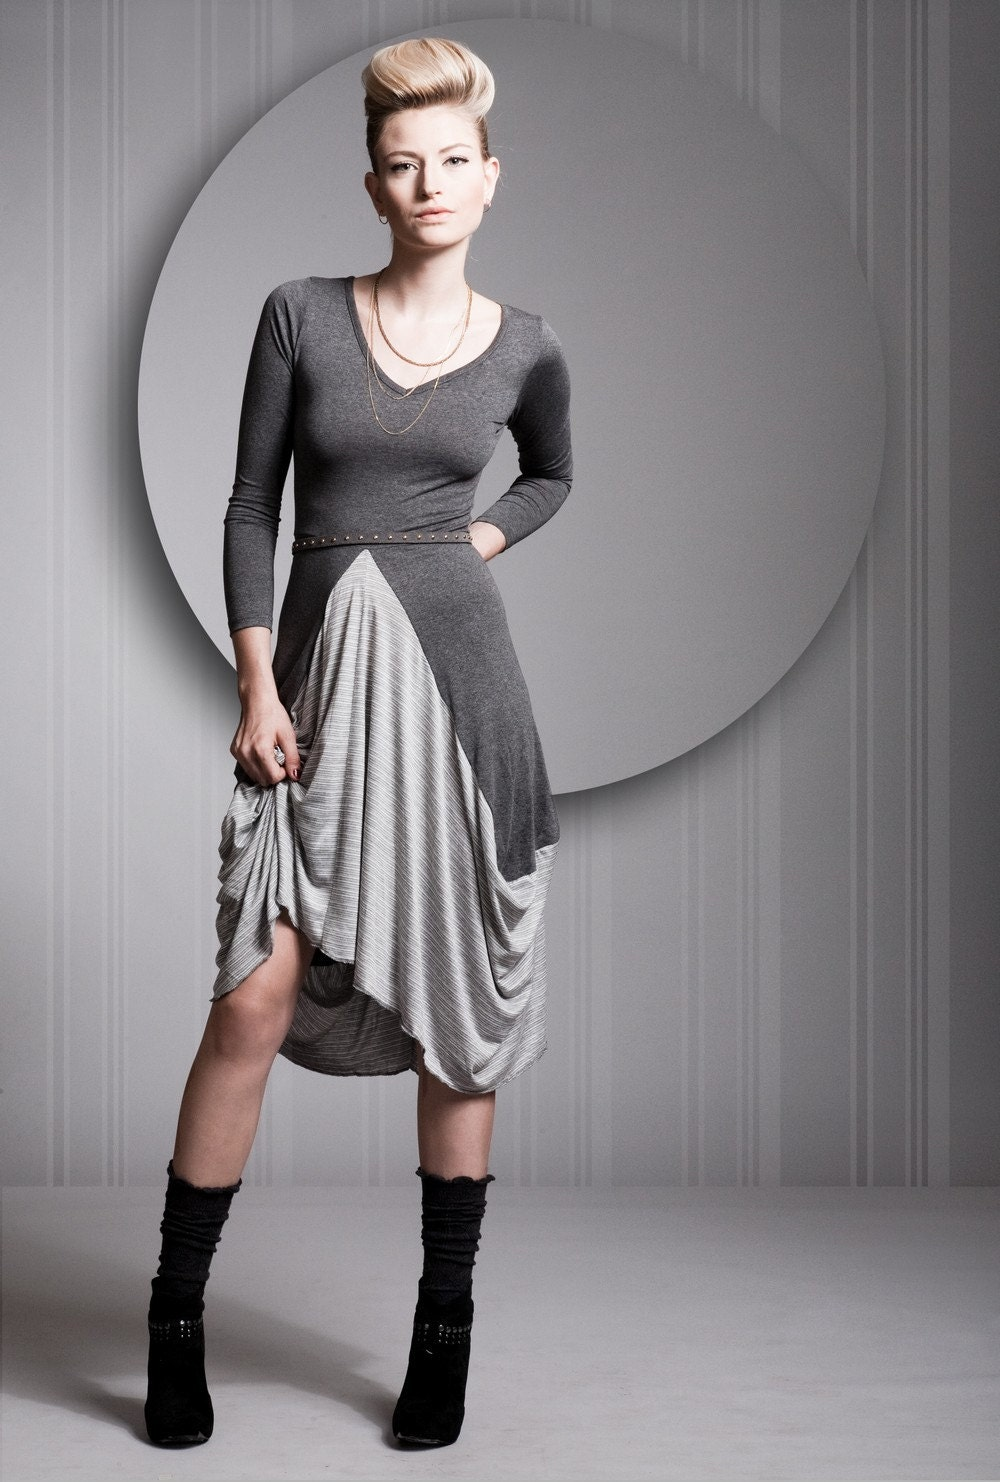 Grey Dress, Gray Dress, Cotton Lycra Dress, Long Sleeves Dress, Gray Robe, Any Sizes, Knee Length - Special Sale - OrliGolan